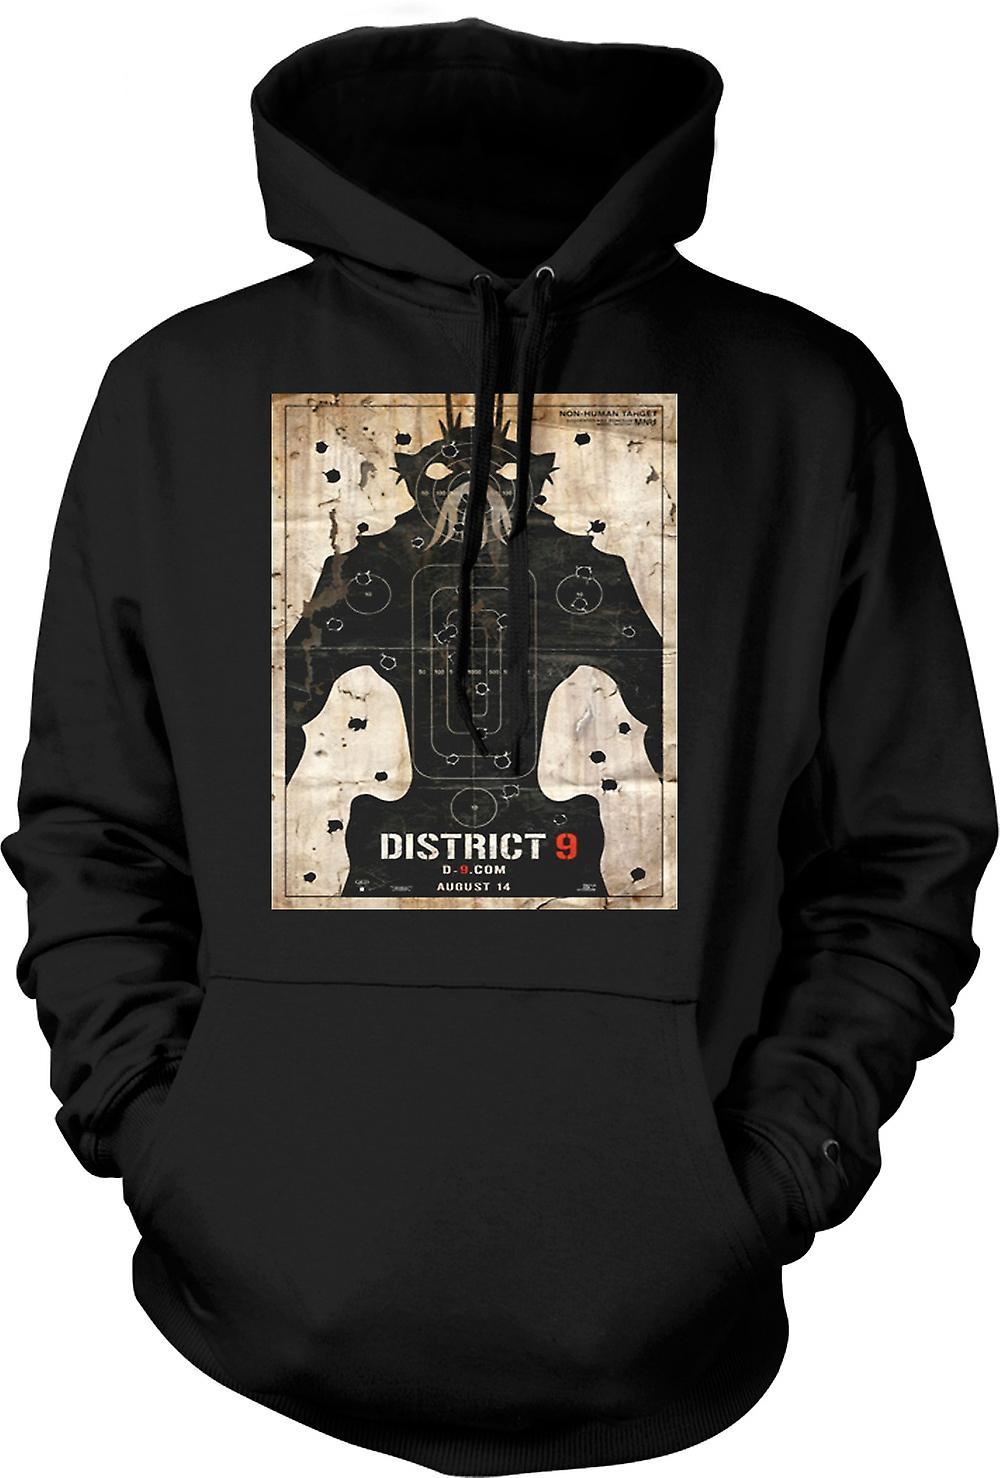 Mens-Hoodie - District 9 - Alien - UFO - B-Movie